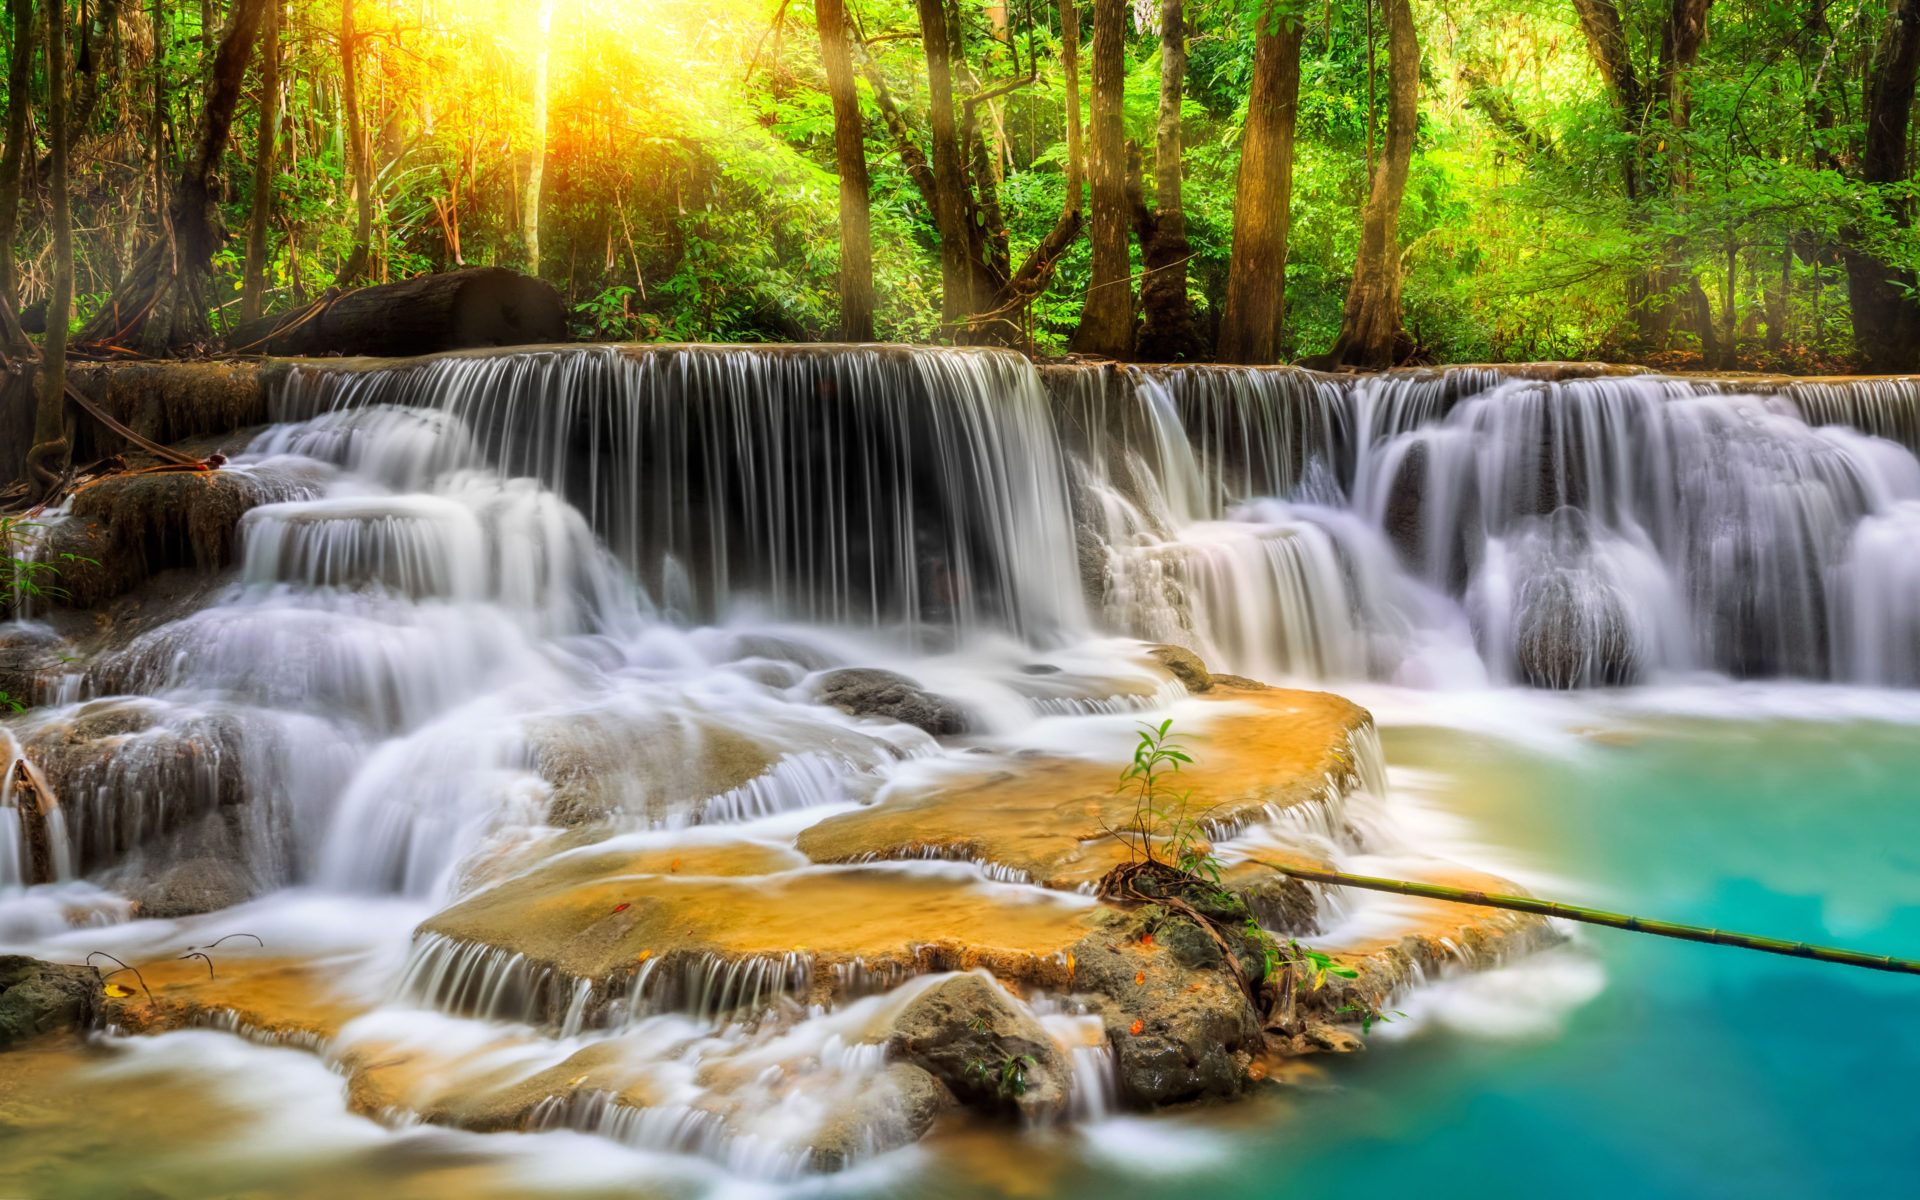 Fall Trees Iphone Wallpaper Cascade Waterfall With Exotic Tropical Vegetation Green